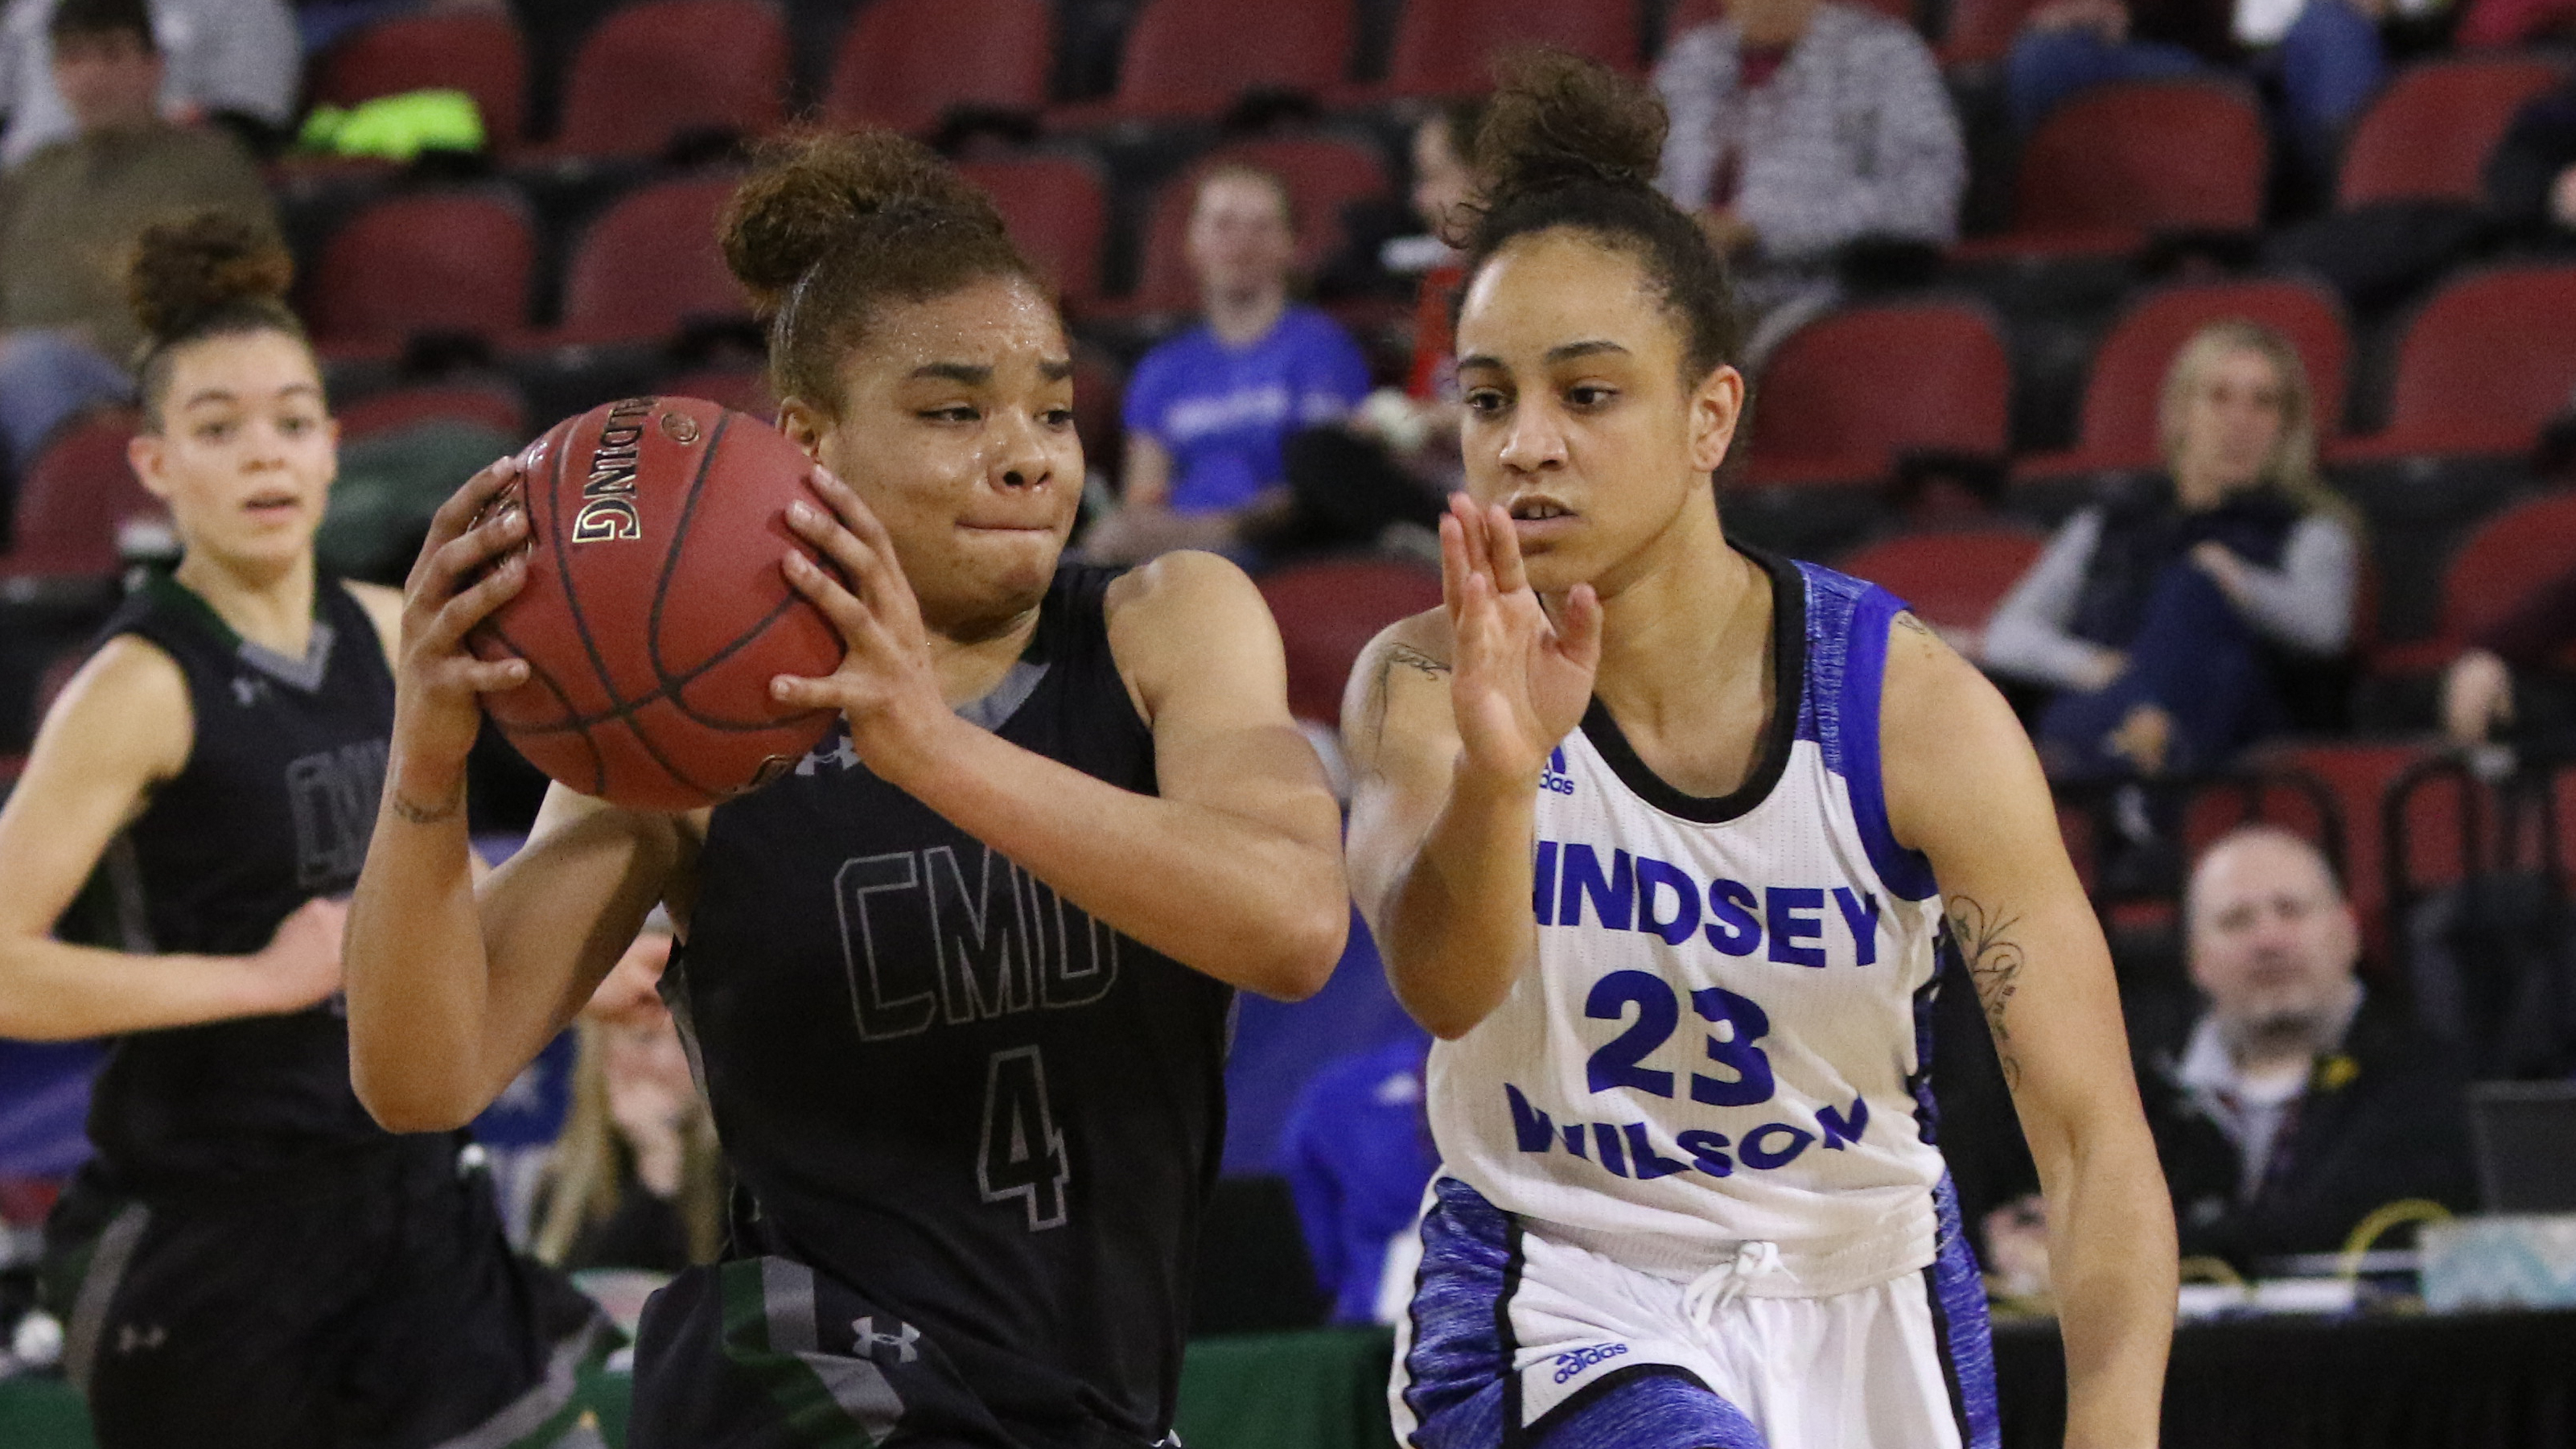 Central Methodist (Mo.) Advances to Quarterfinals Over Lindsey Wilson (Ky.)